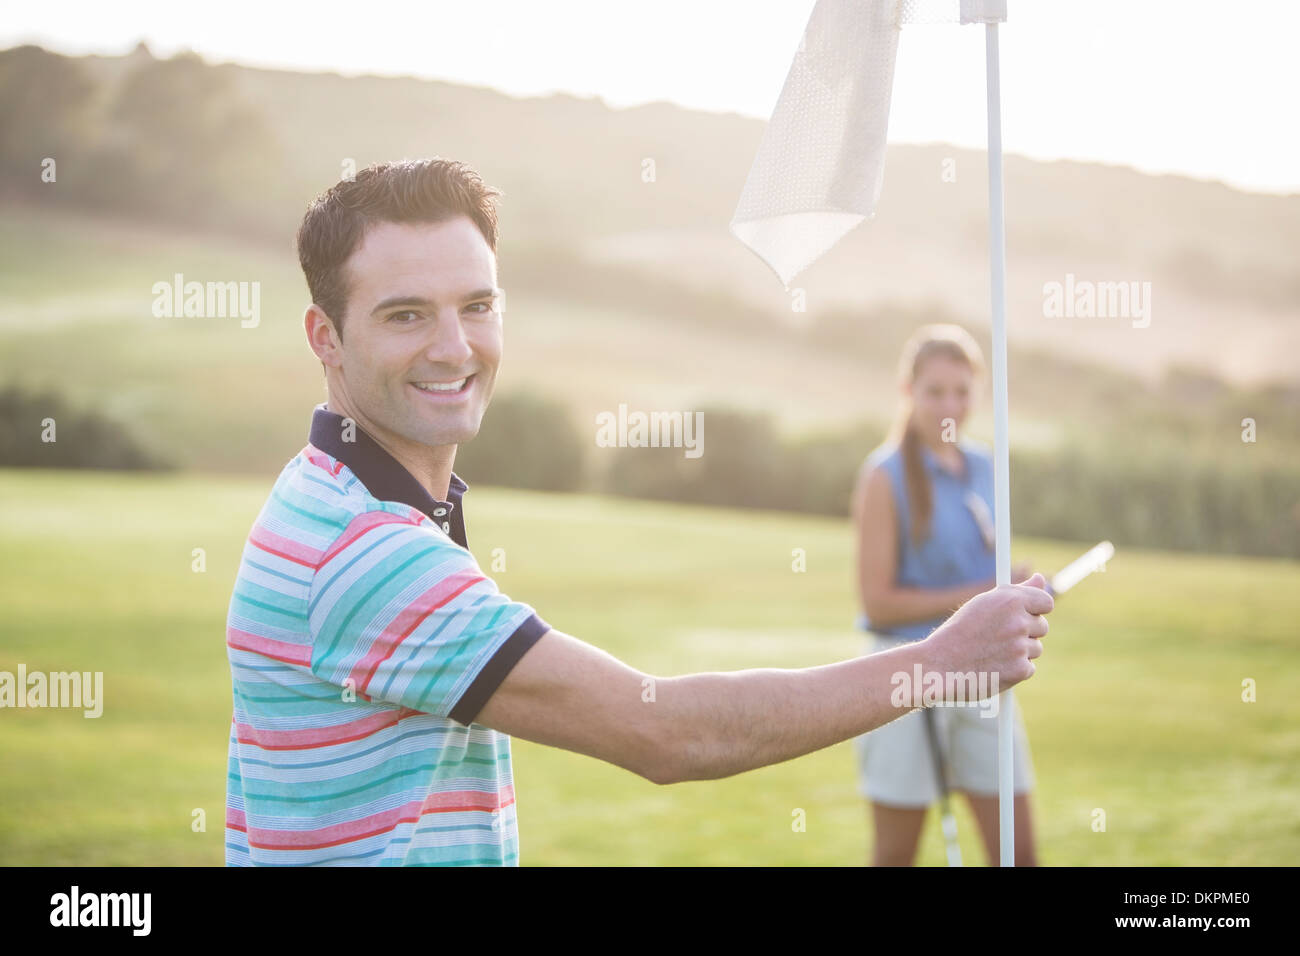 Couple on golf course - Stock Image